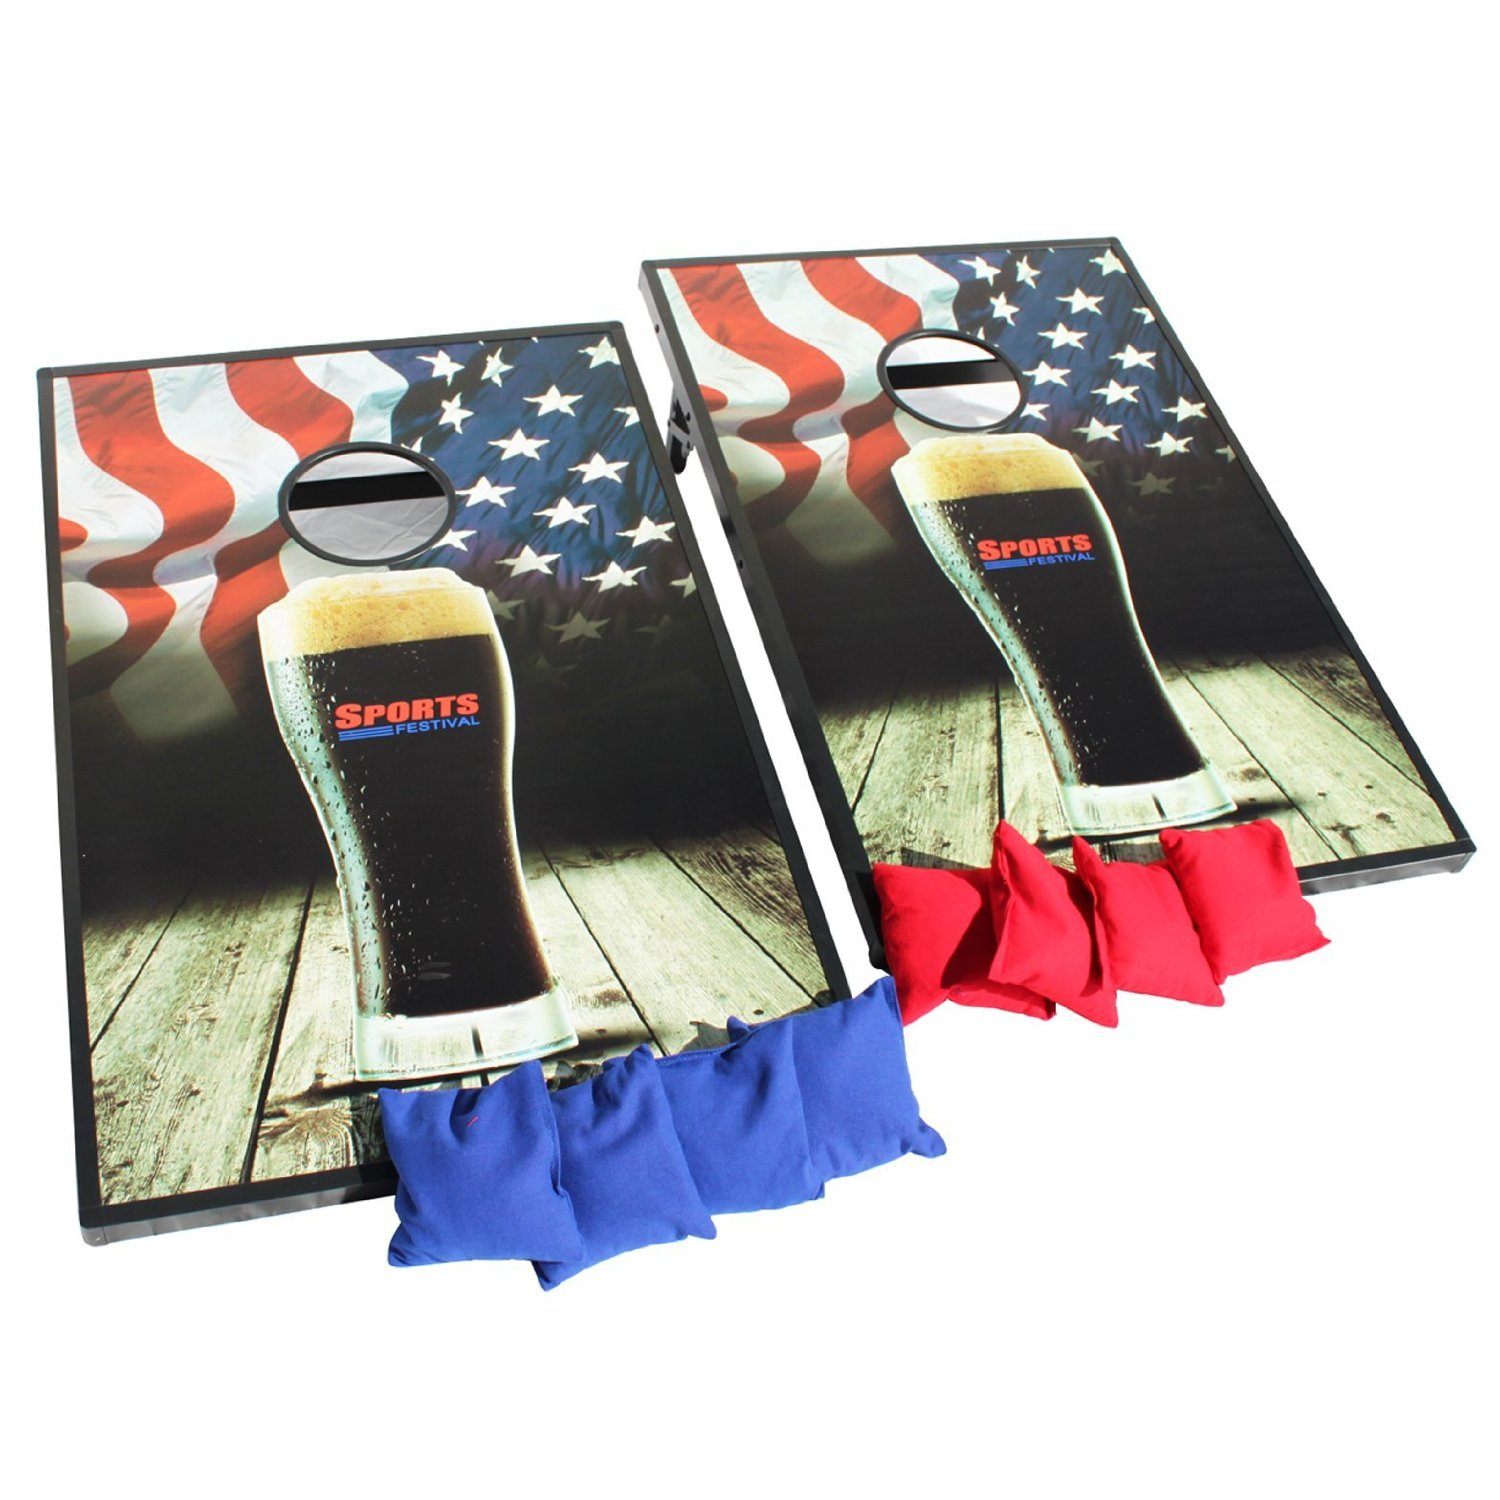 Amazing Buy Sports Festival 3 X 2 Portable Bean Bag Cornhole Toss Pdpeps Interior Chair Design Pdpepsorg